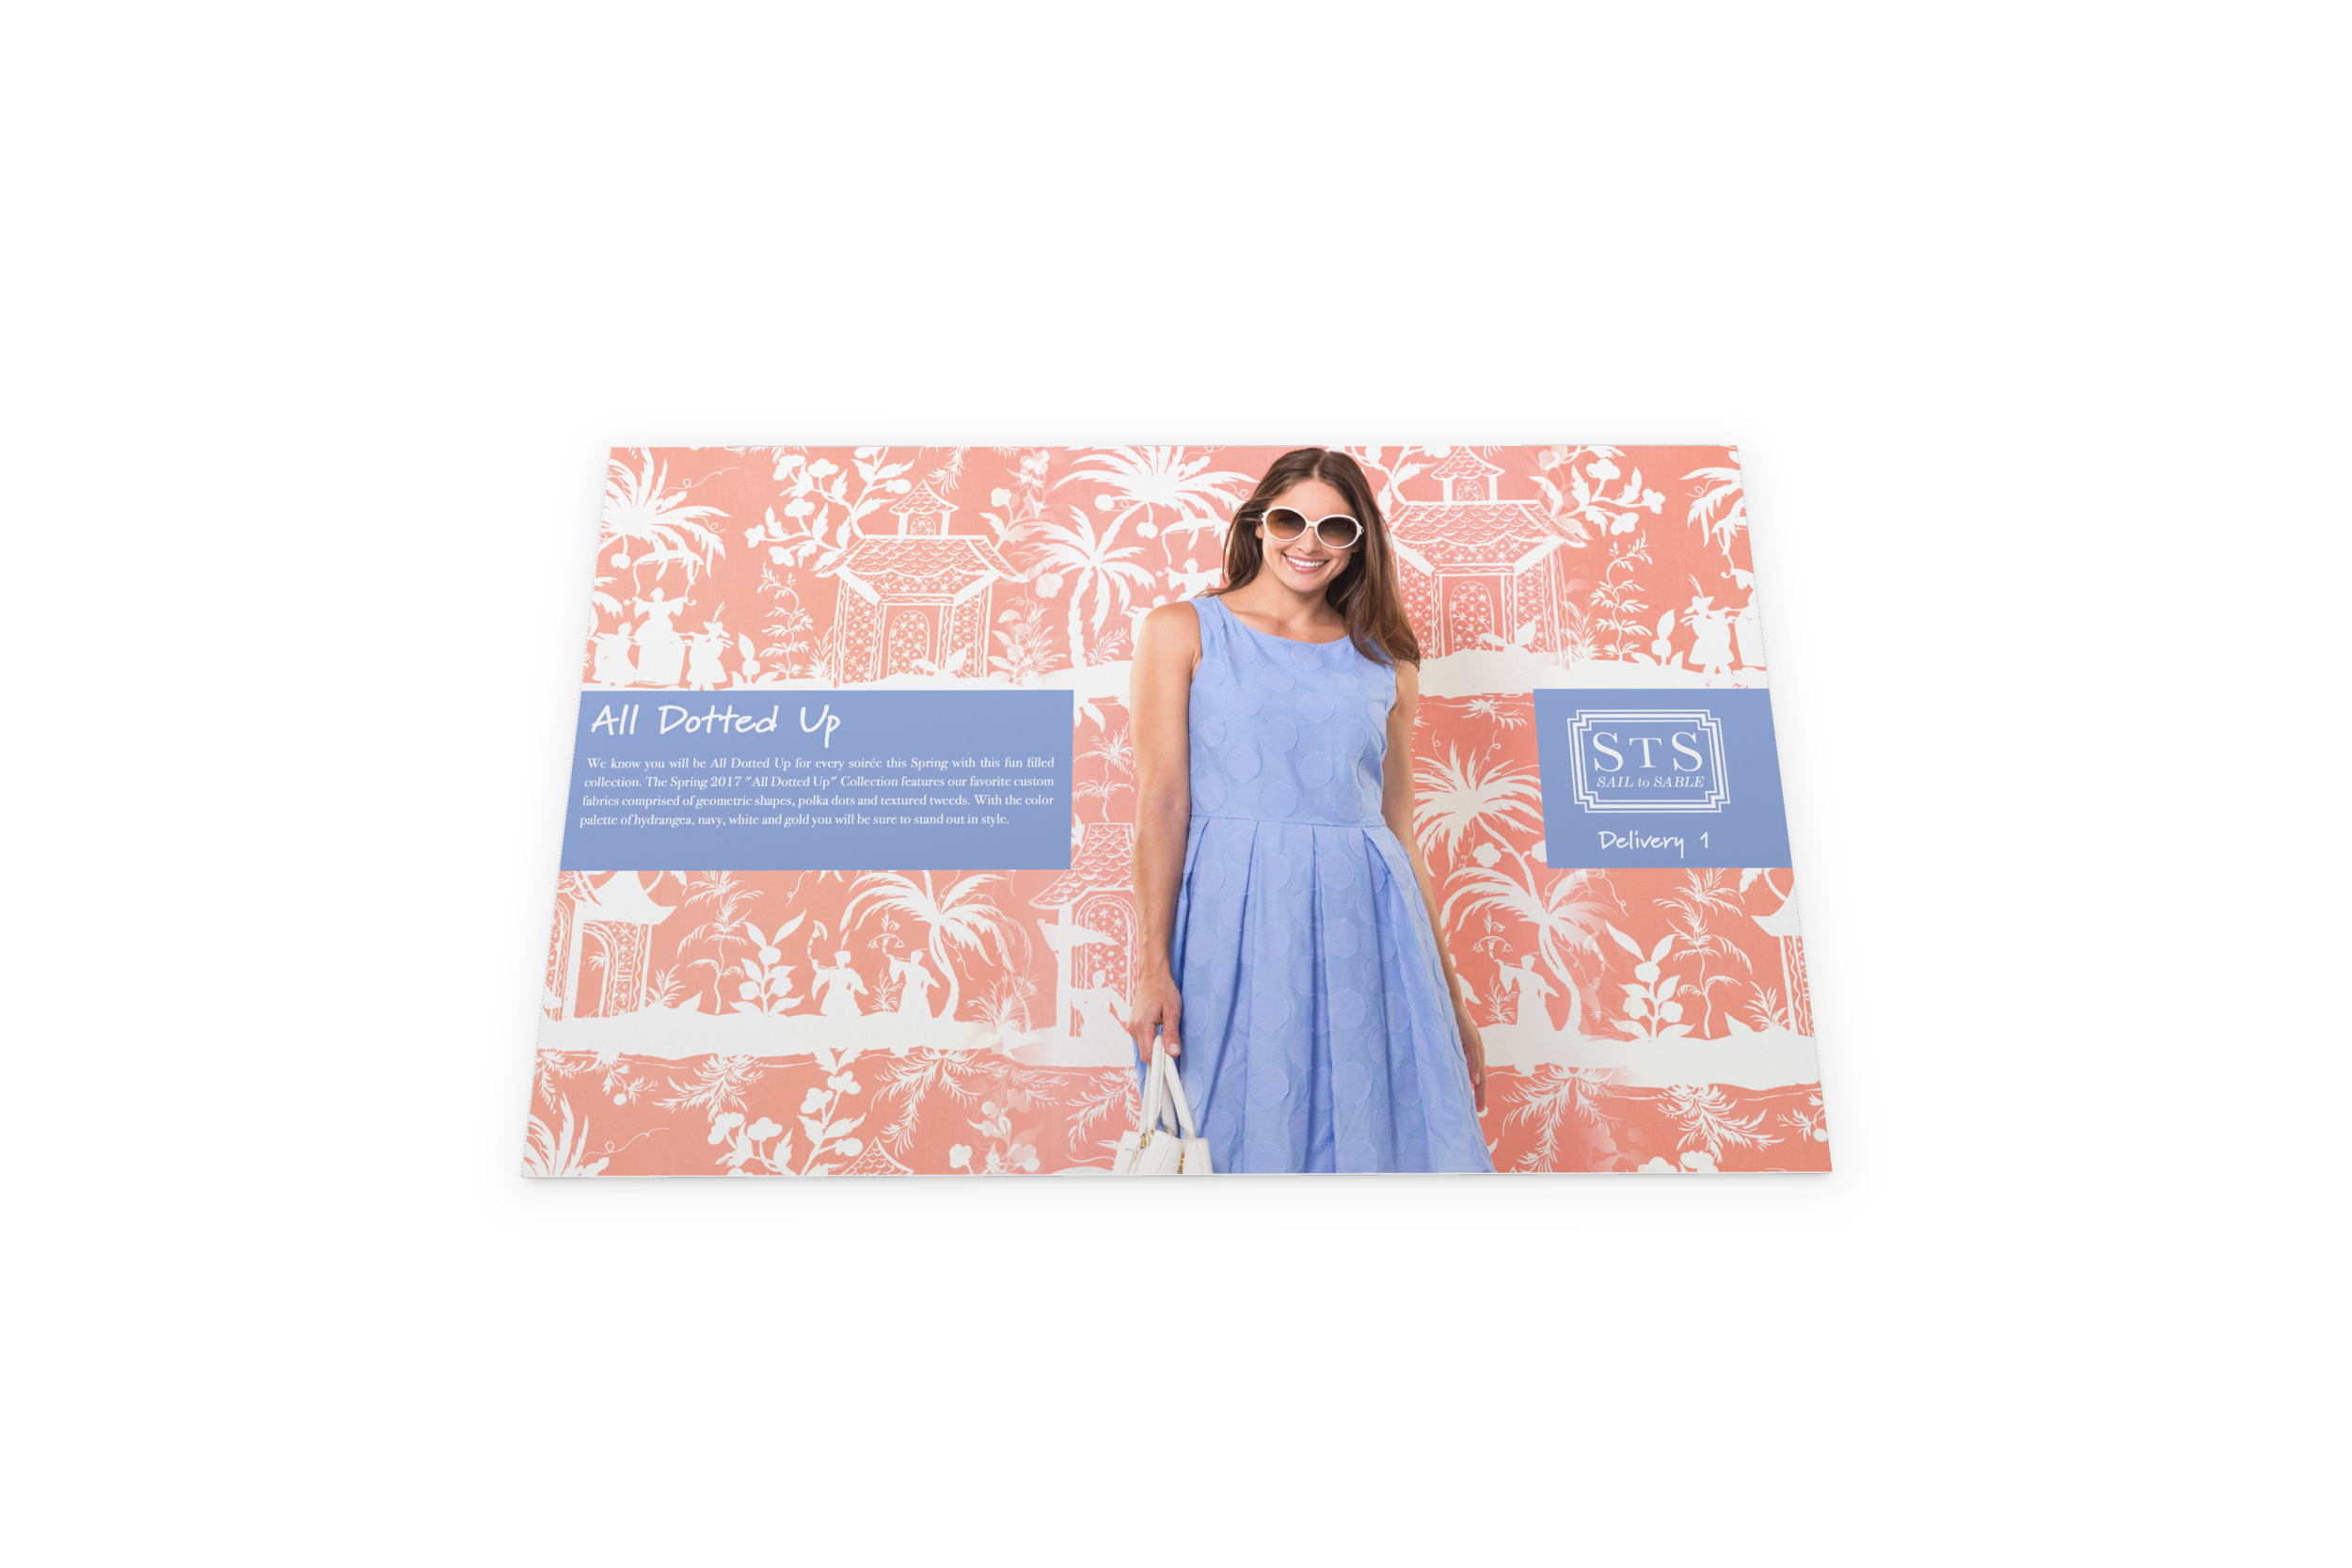 Plus Card 8007 2019-06-18_1_2_3_4_5_6_7_8_9_10_11_12.png